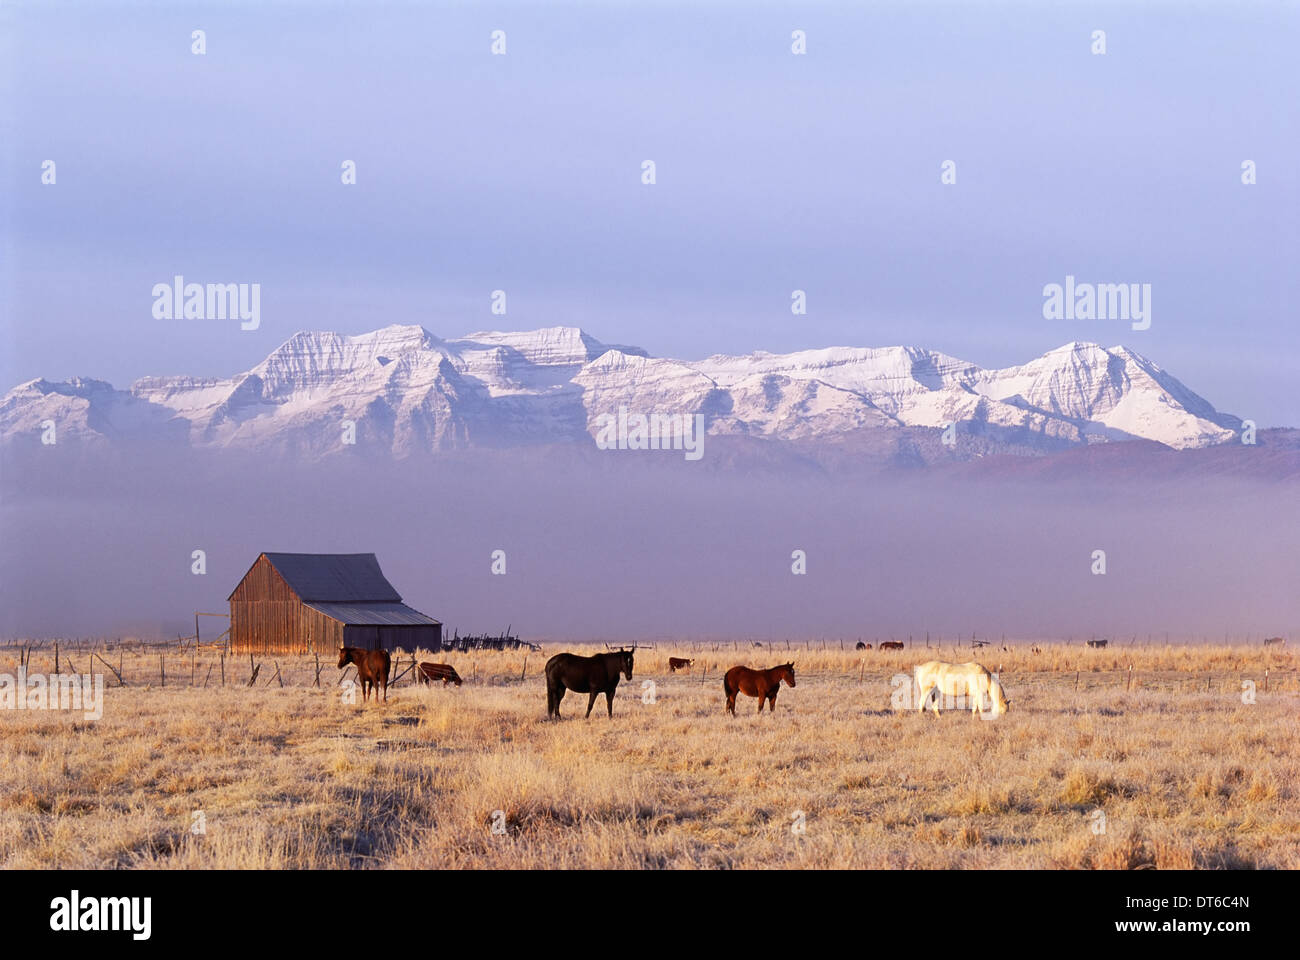 A small group of horses grazing in the Heber Valley. A snowcapped mountain range, and Mount Timpanagos. - Stock Image